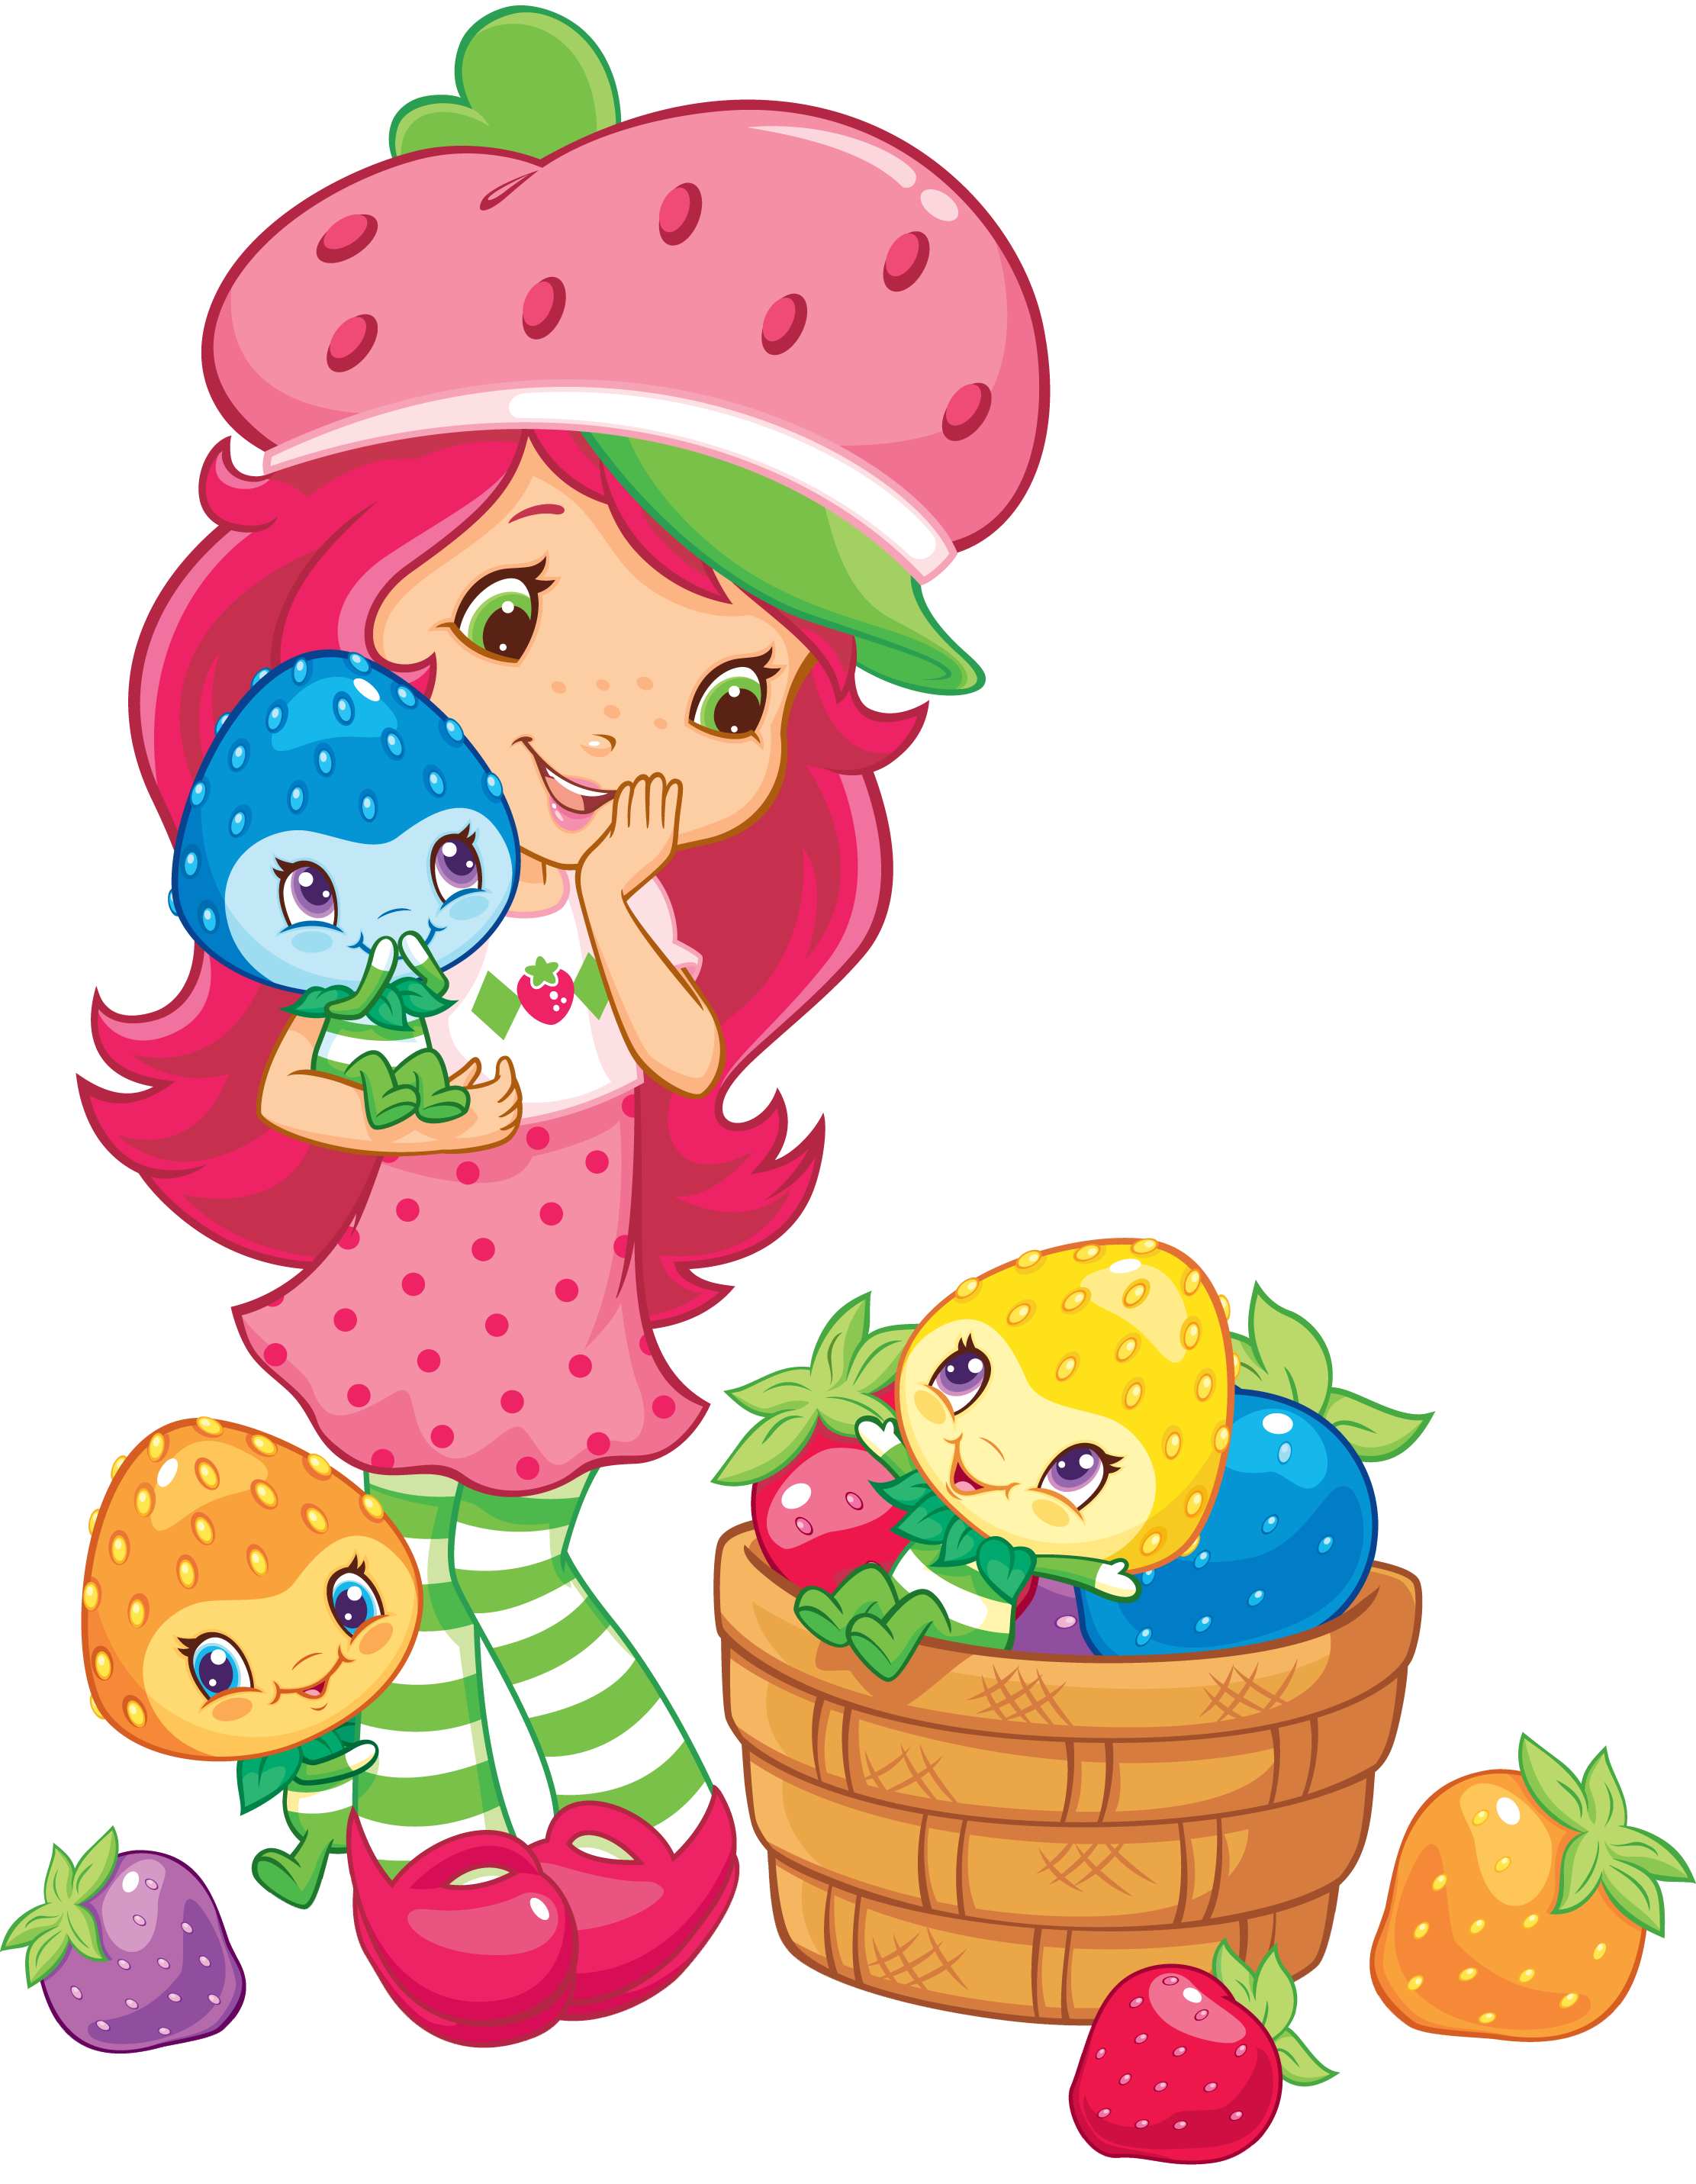 Strawberry shortcake png. Image sscwithberrykinsnoshadow wiki file